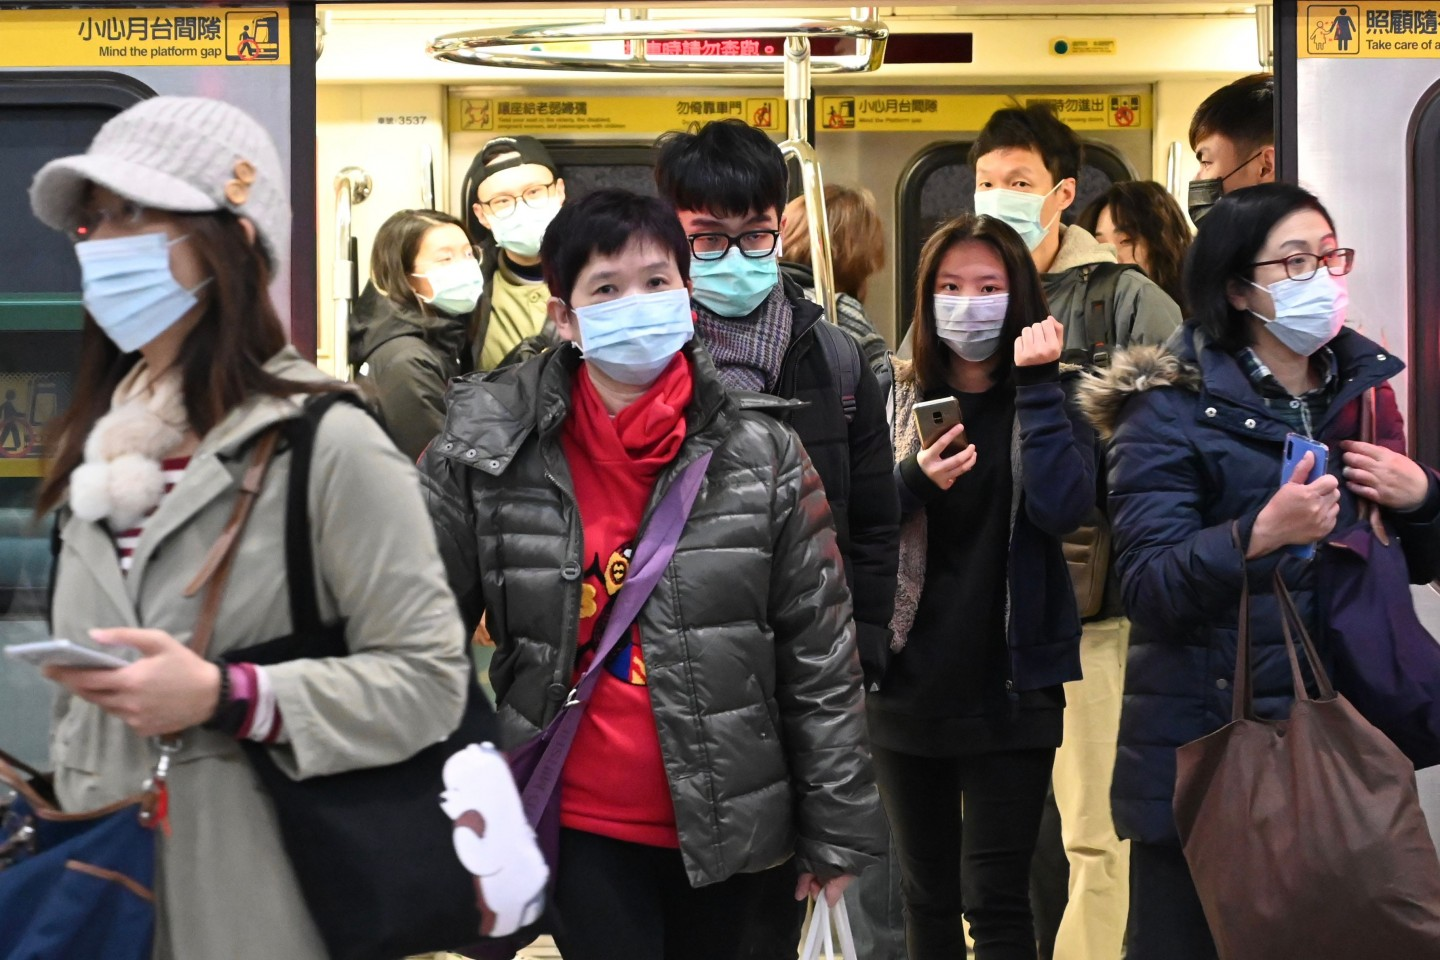 Mask-clad commuters get off a train at a train station in Taipei following the Lunar New Year holidays on 30 January 2020. (Sam Yeh/AFP)